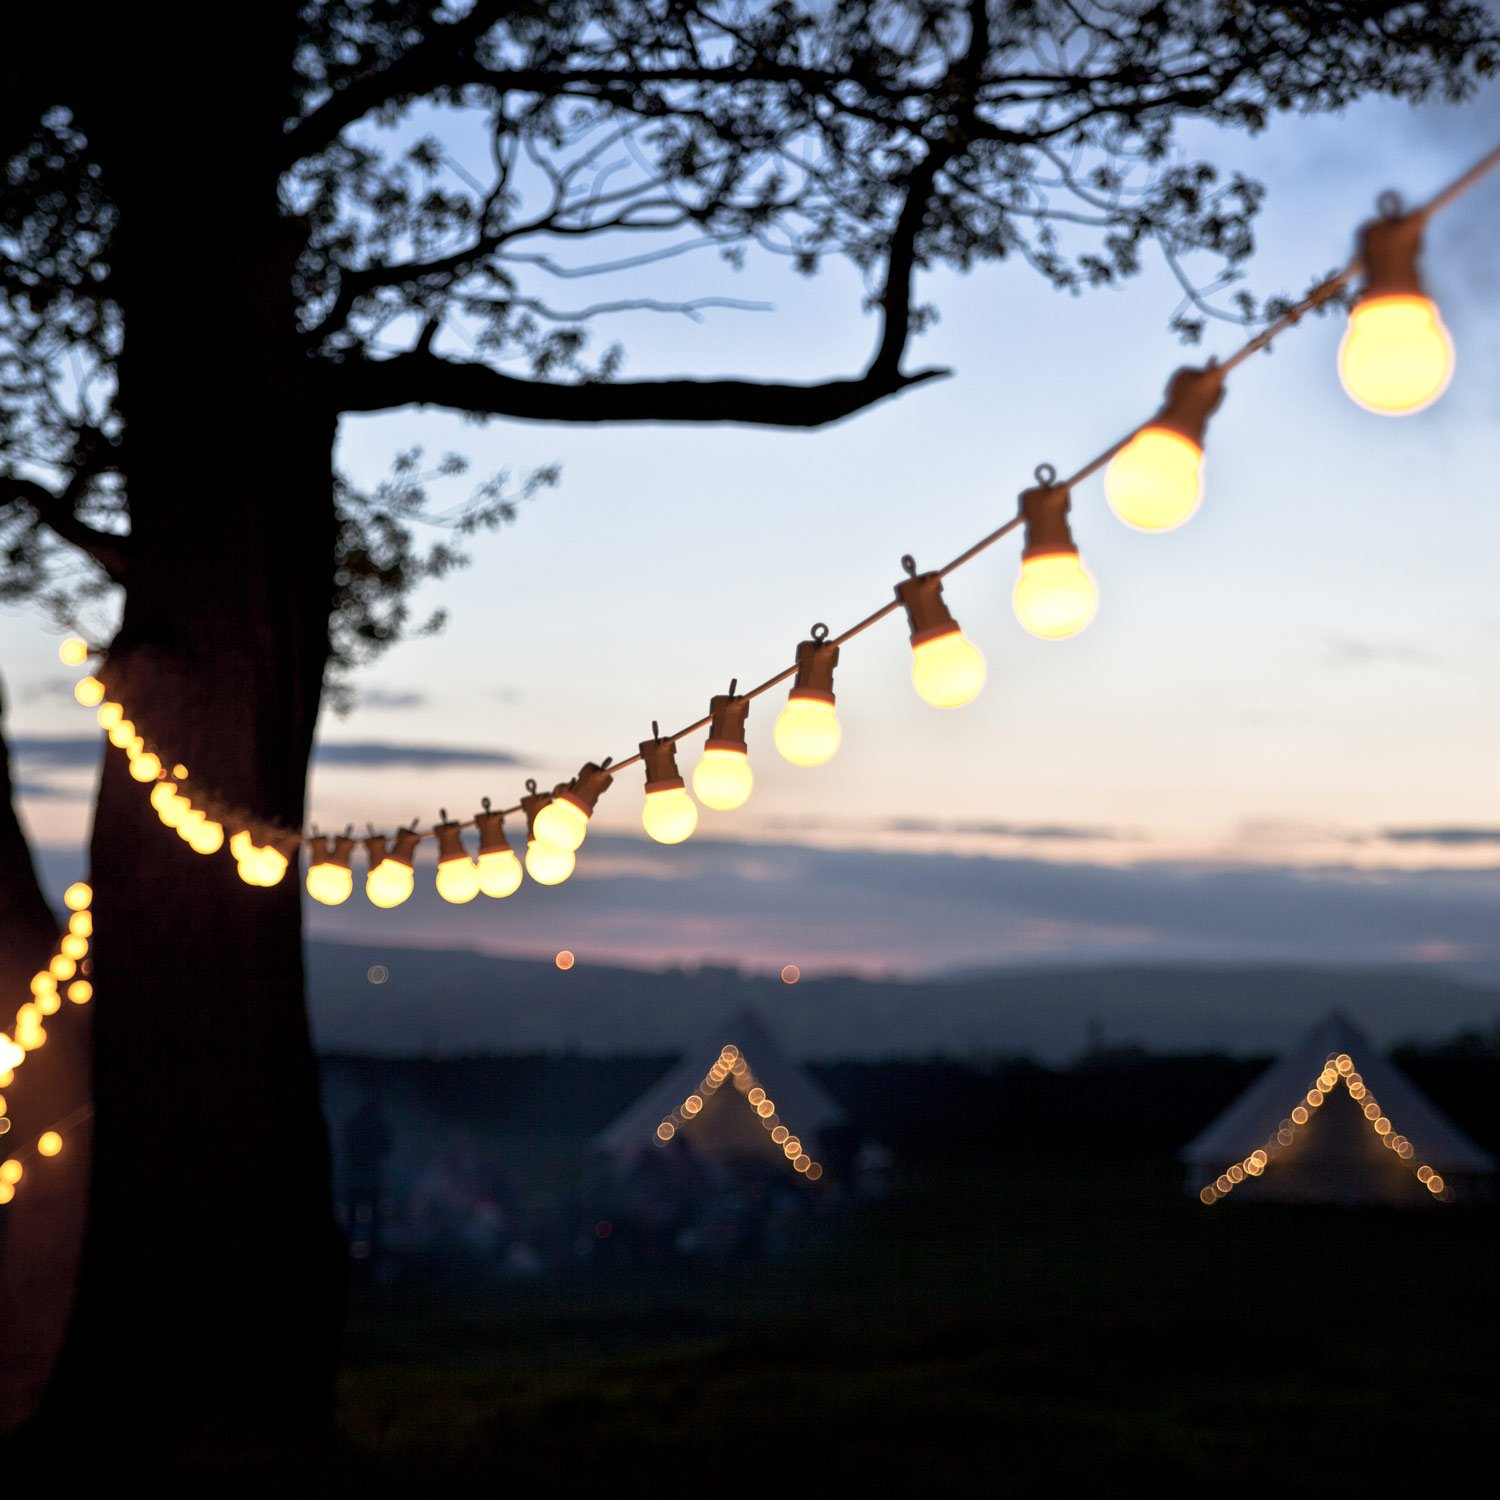 20 warm white led connectable festoon party lights on white cable 20 warm white led connectable festoon party lights on white cable type u for indoor outdoor use by lights4fun amazon garden outdoors mozeypictures Gallery